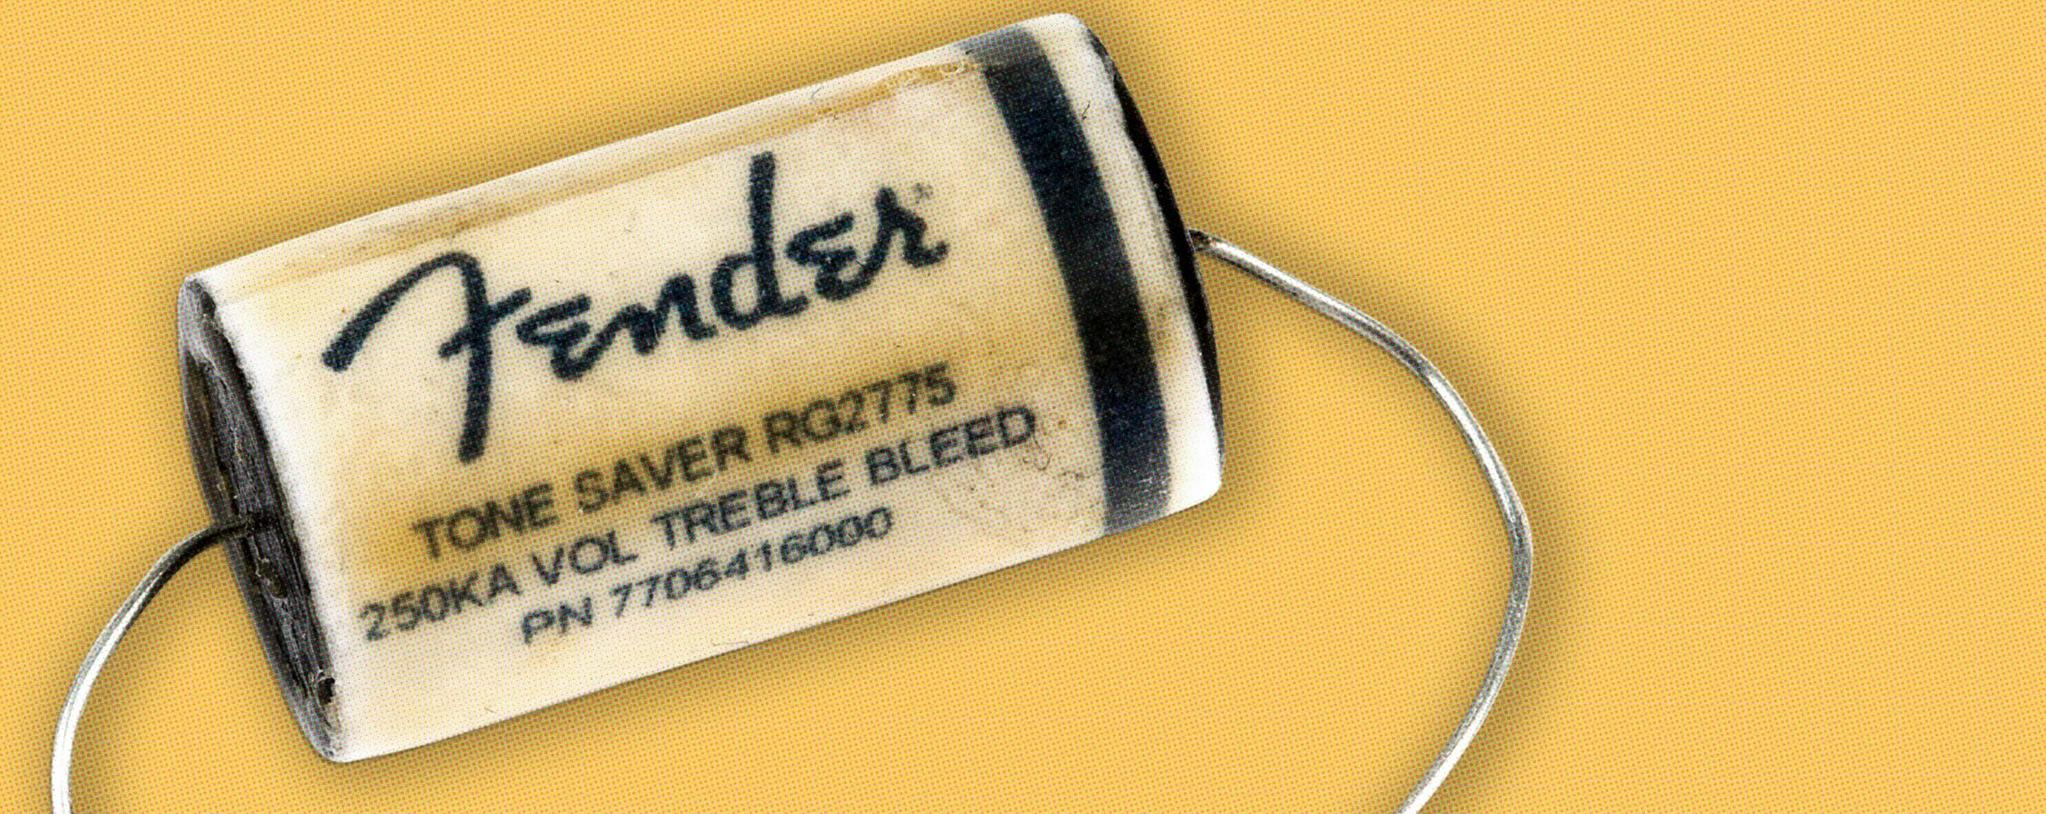 "Fender on Twitter: ""How a treble-bleed circuit can affect your tone:  https://t.co/MTtOLSXtKM #tips #dyk… """